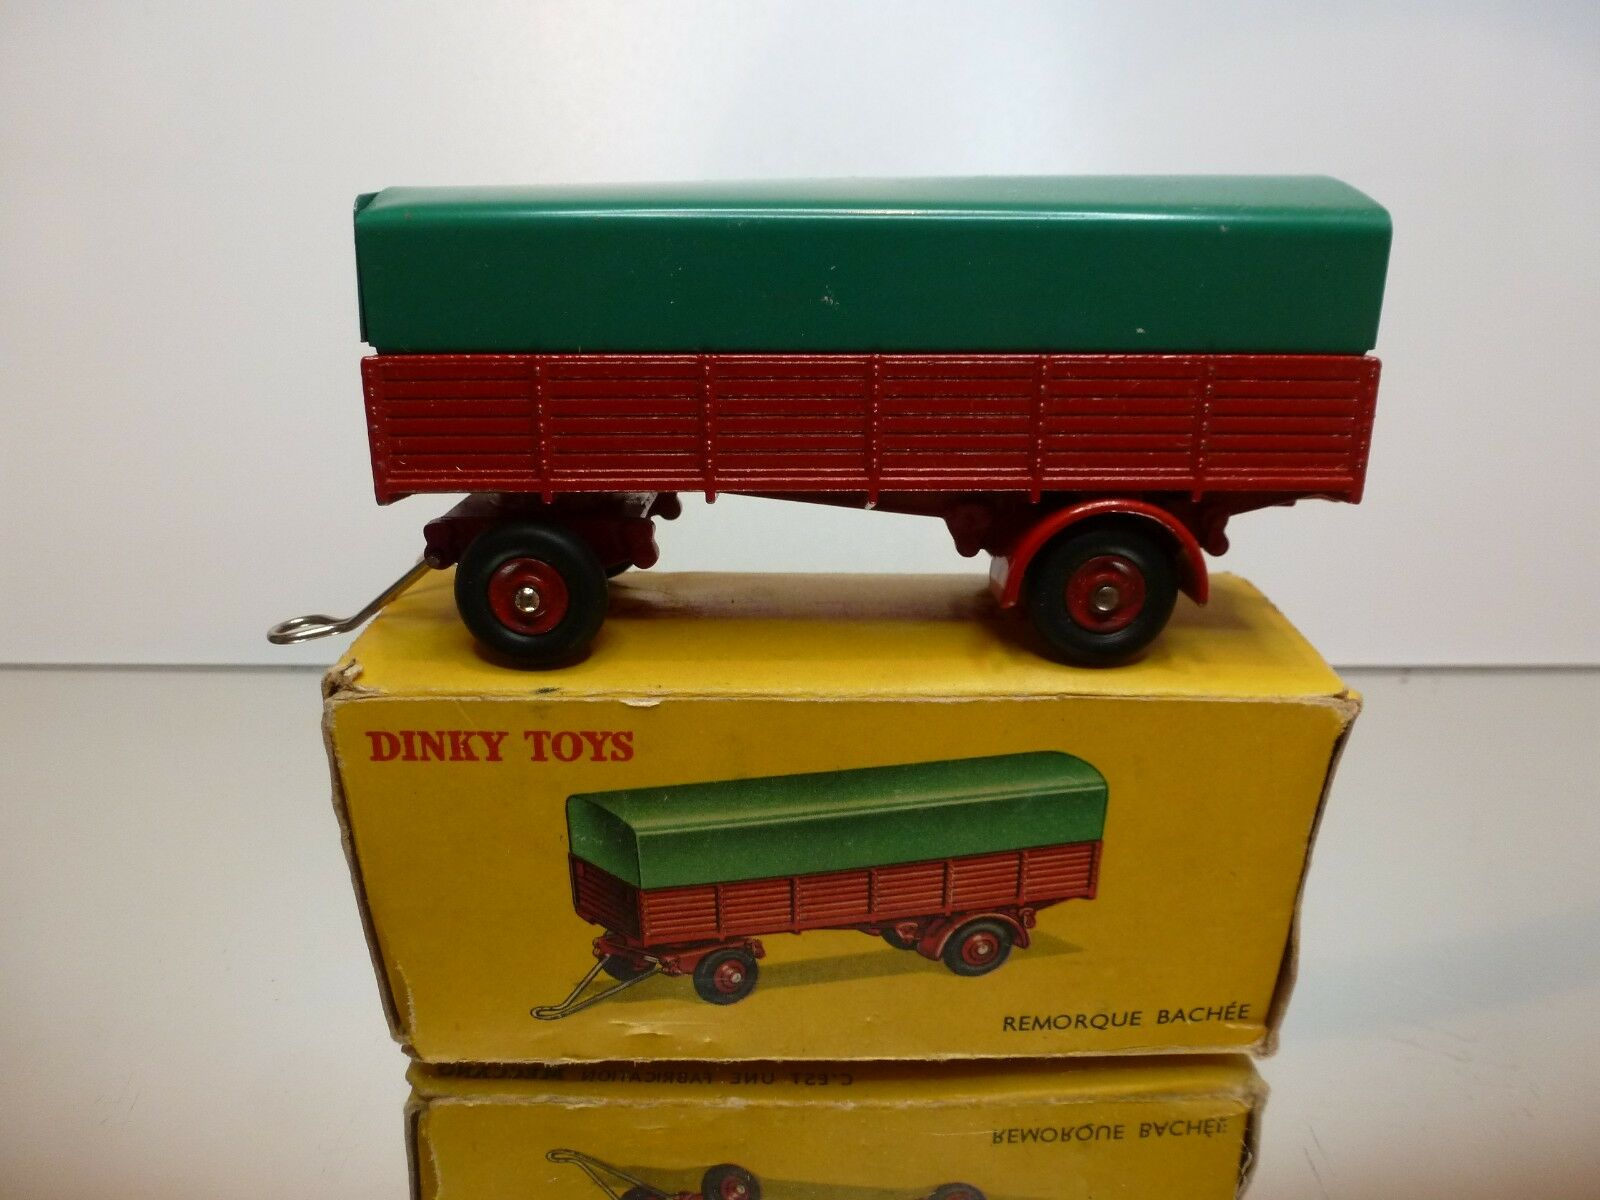 DINKY TOYS 70   REMORQUE BACHEE - GOOD CONDITION - IN BOX